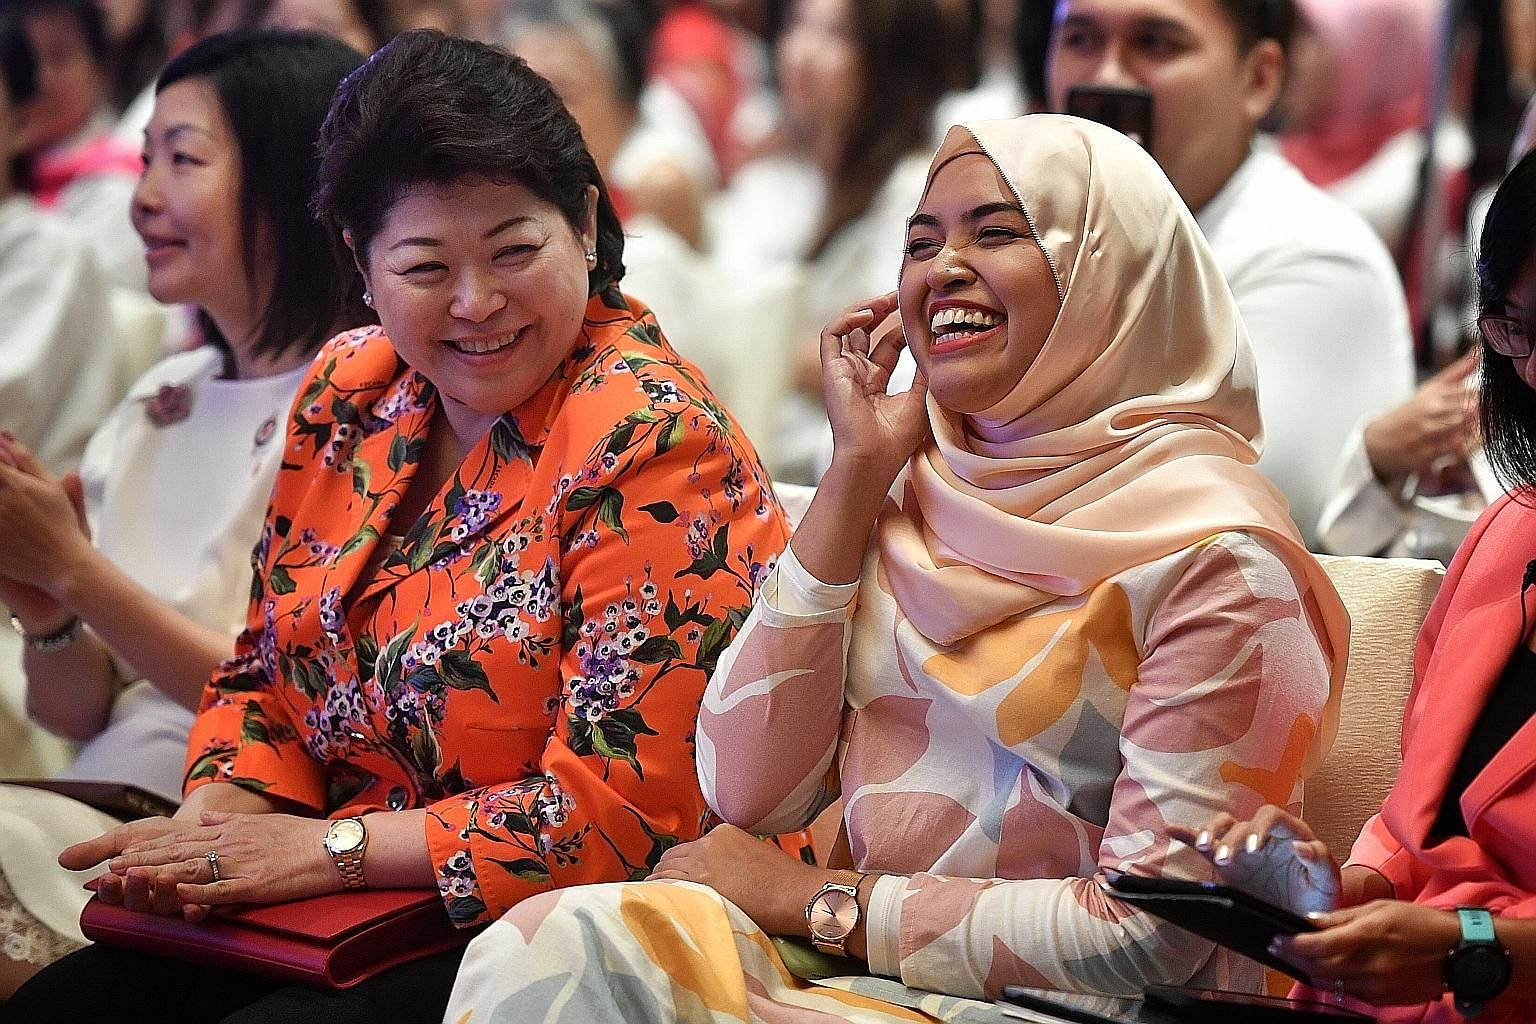 Ms Nabillah Jalal and Ms Susan Chong, who were on the panel at the PAP Women's Wing annual conference yesterday, sharing a lighthearted moment as they were introduced before the discussion. PHOTO: CHONG JUN LIANG